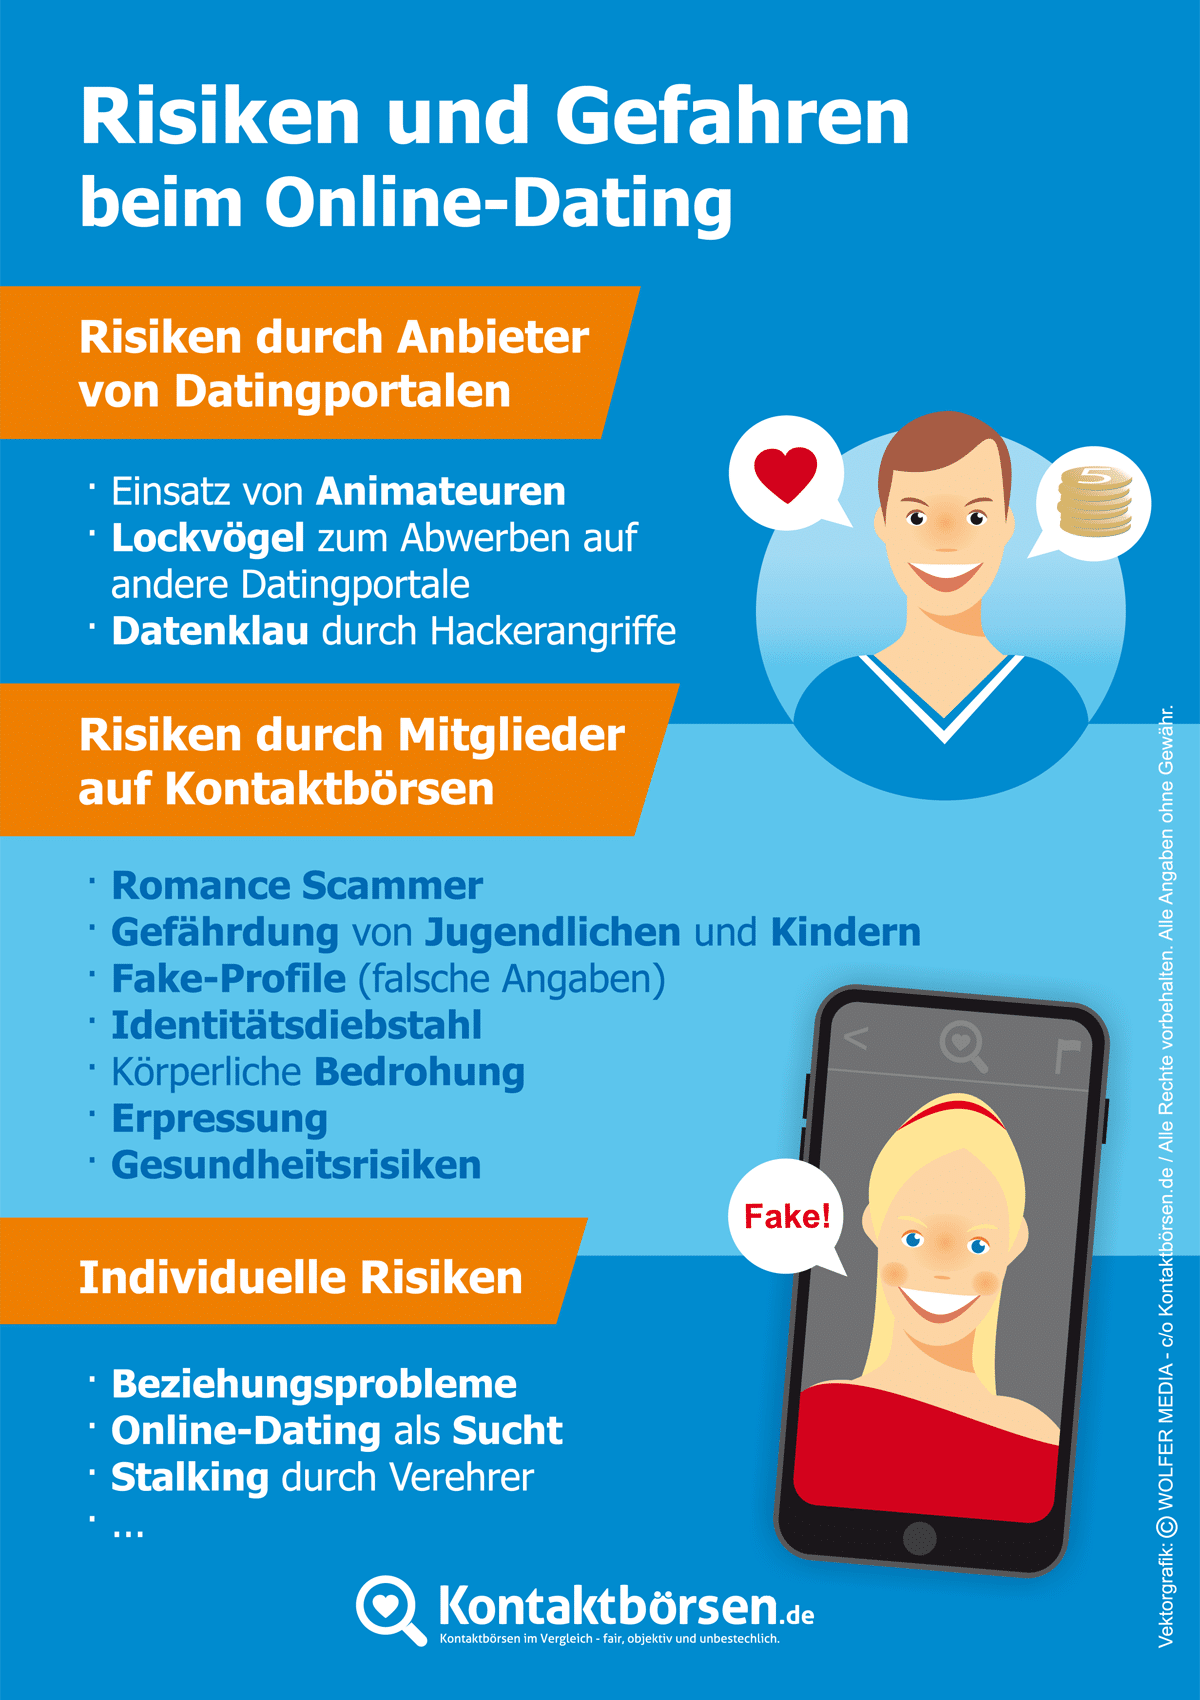 Offline-Dating-Dienste